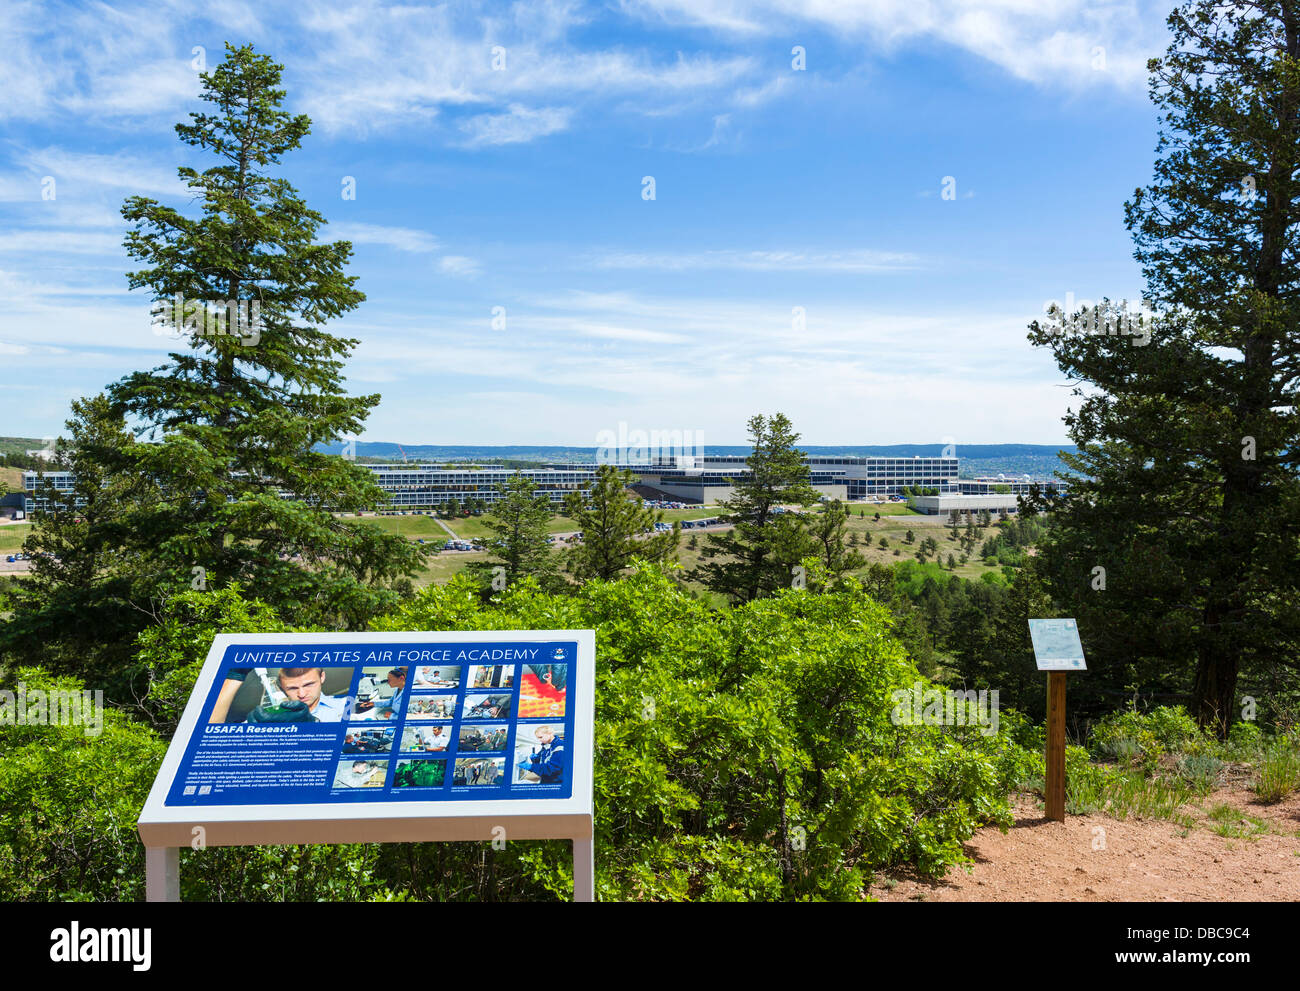 View over the United States Air Force Academy, Colorado Springs, Colorado, USA - Stock Image